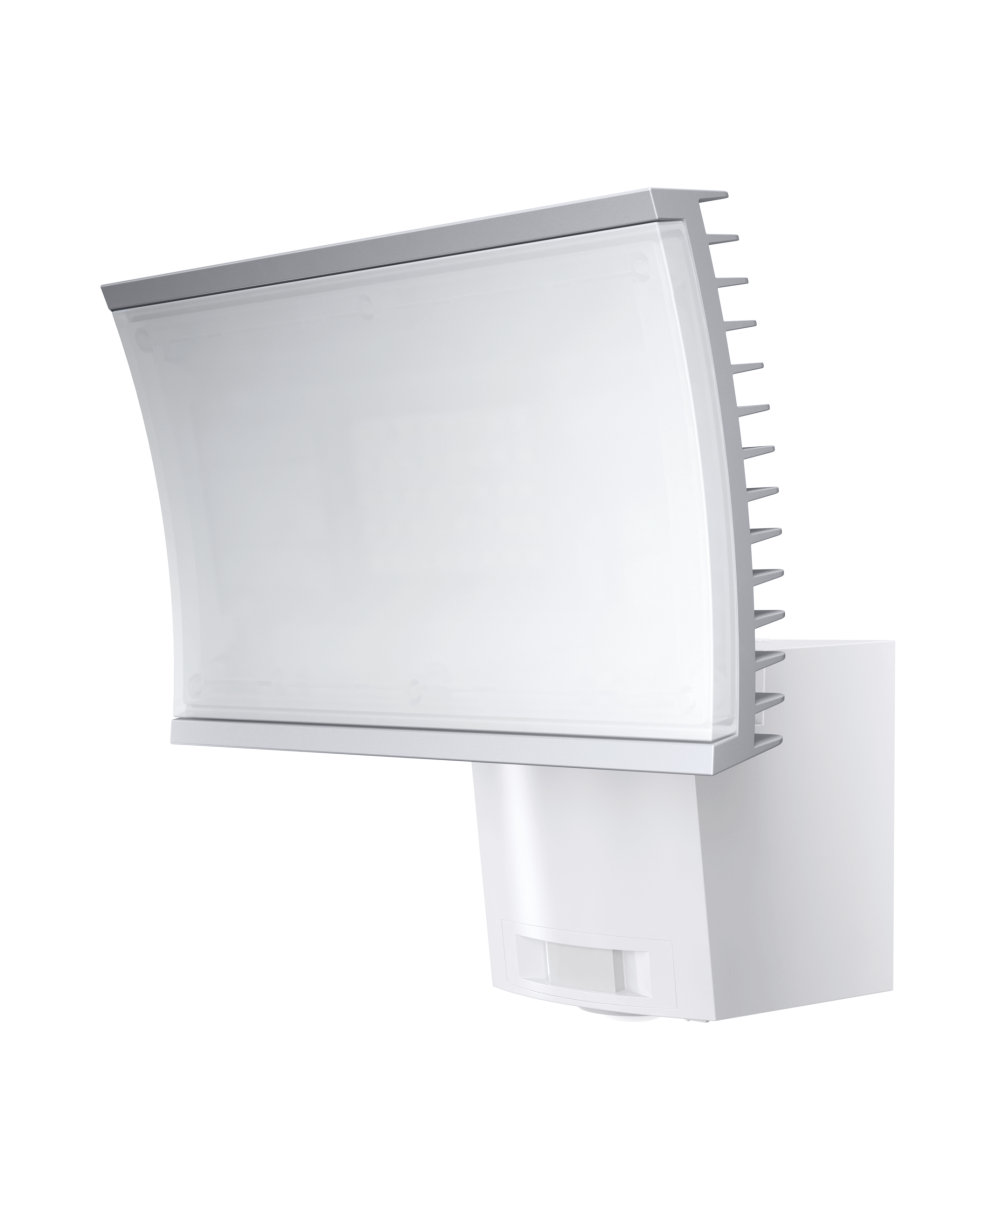 NOXLITE LED HP FLOODLIGHT II 40 W white